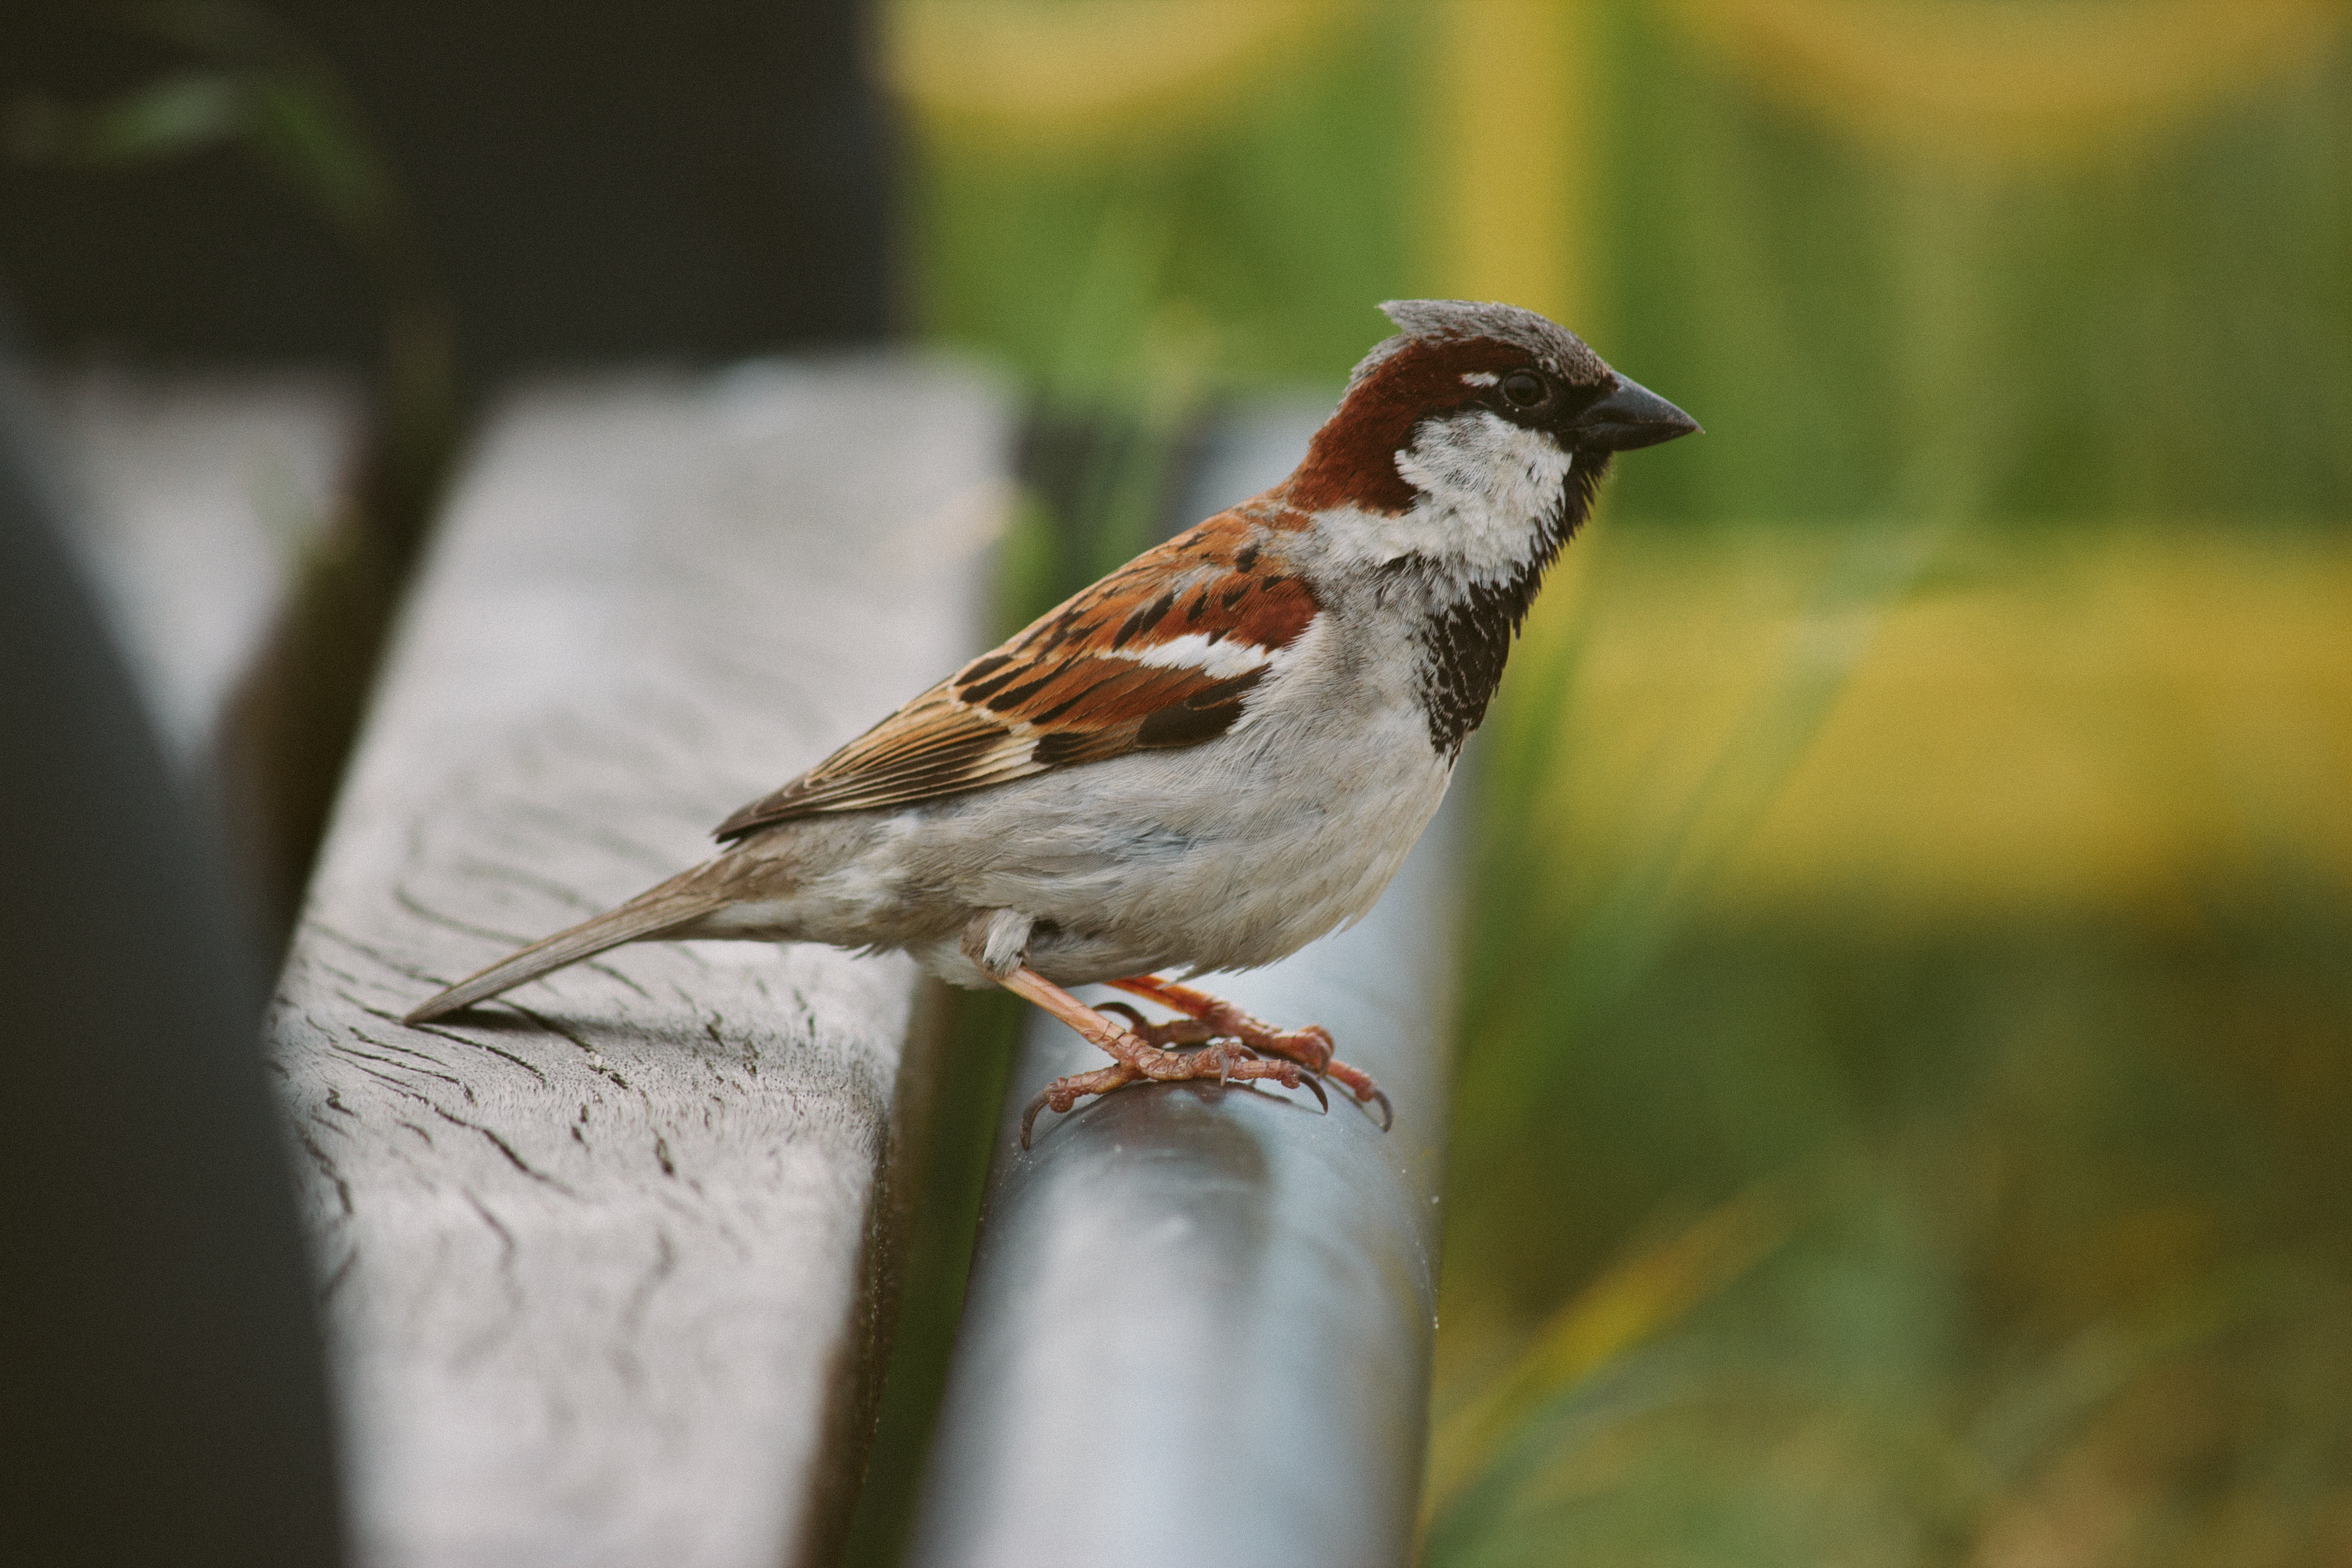 Sparrow perched on bench photo